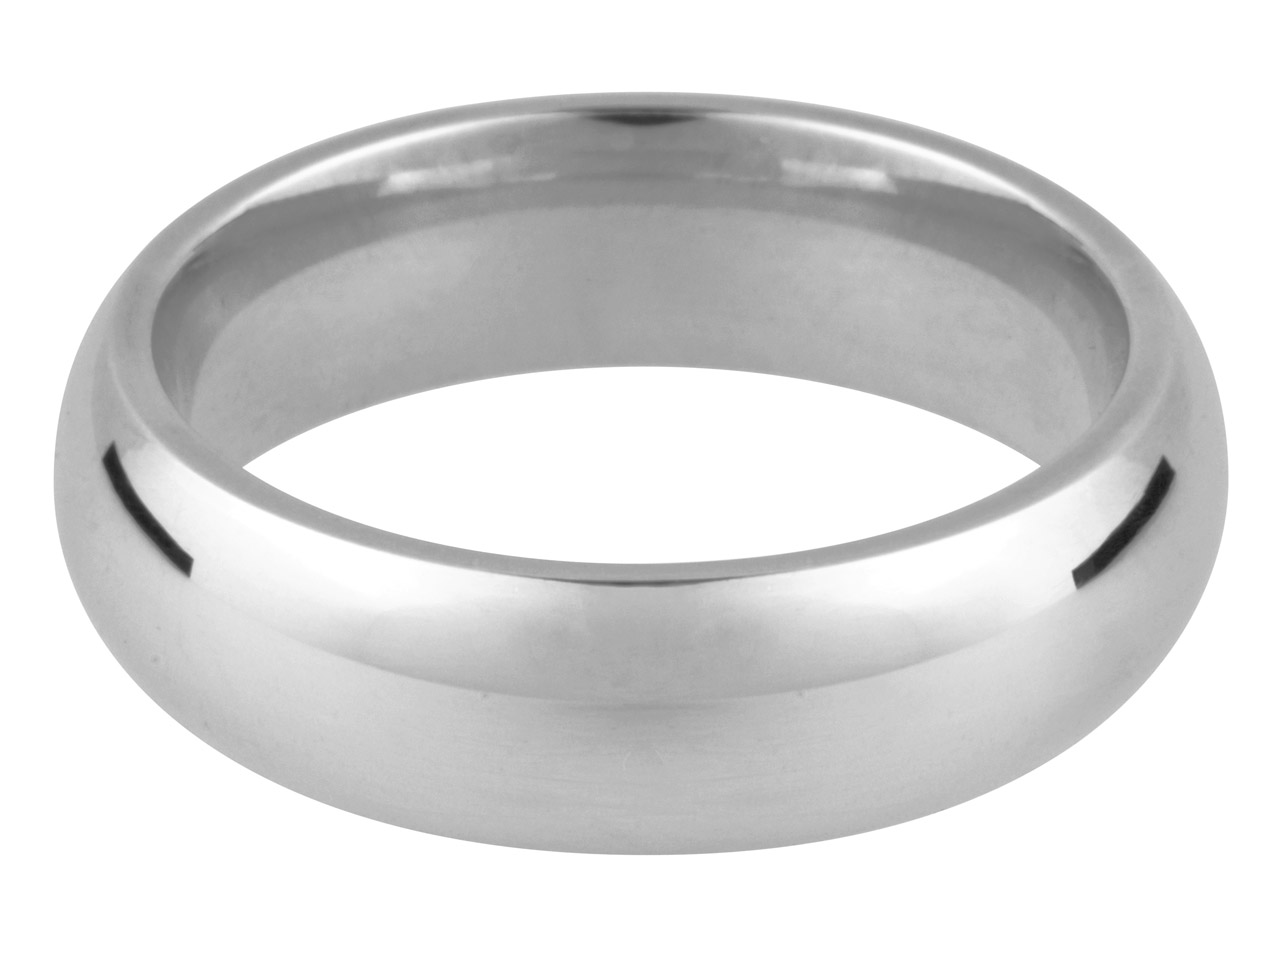 Palladium Court Wedding Ring 8.0mm R 10.9gms Medium Weight Hallmarked Wall Thickness 2.31mm